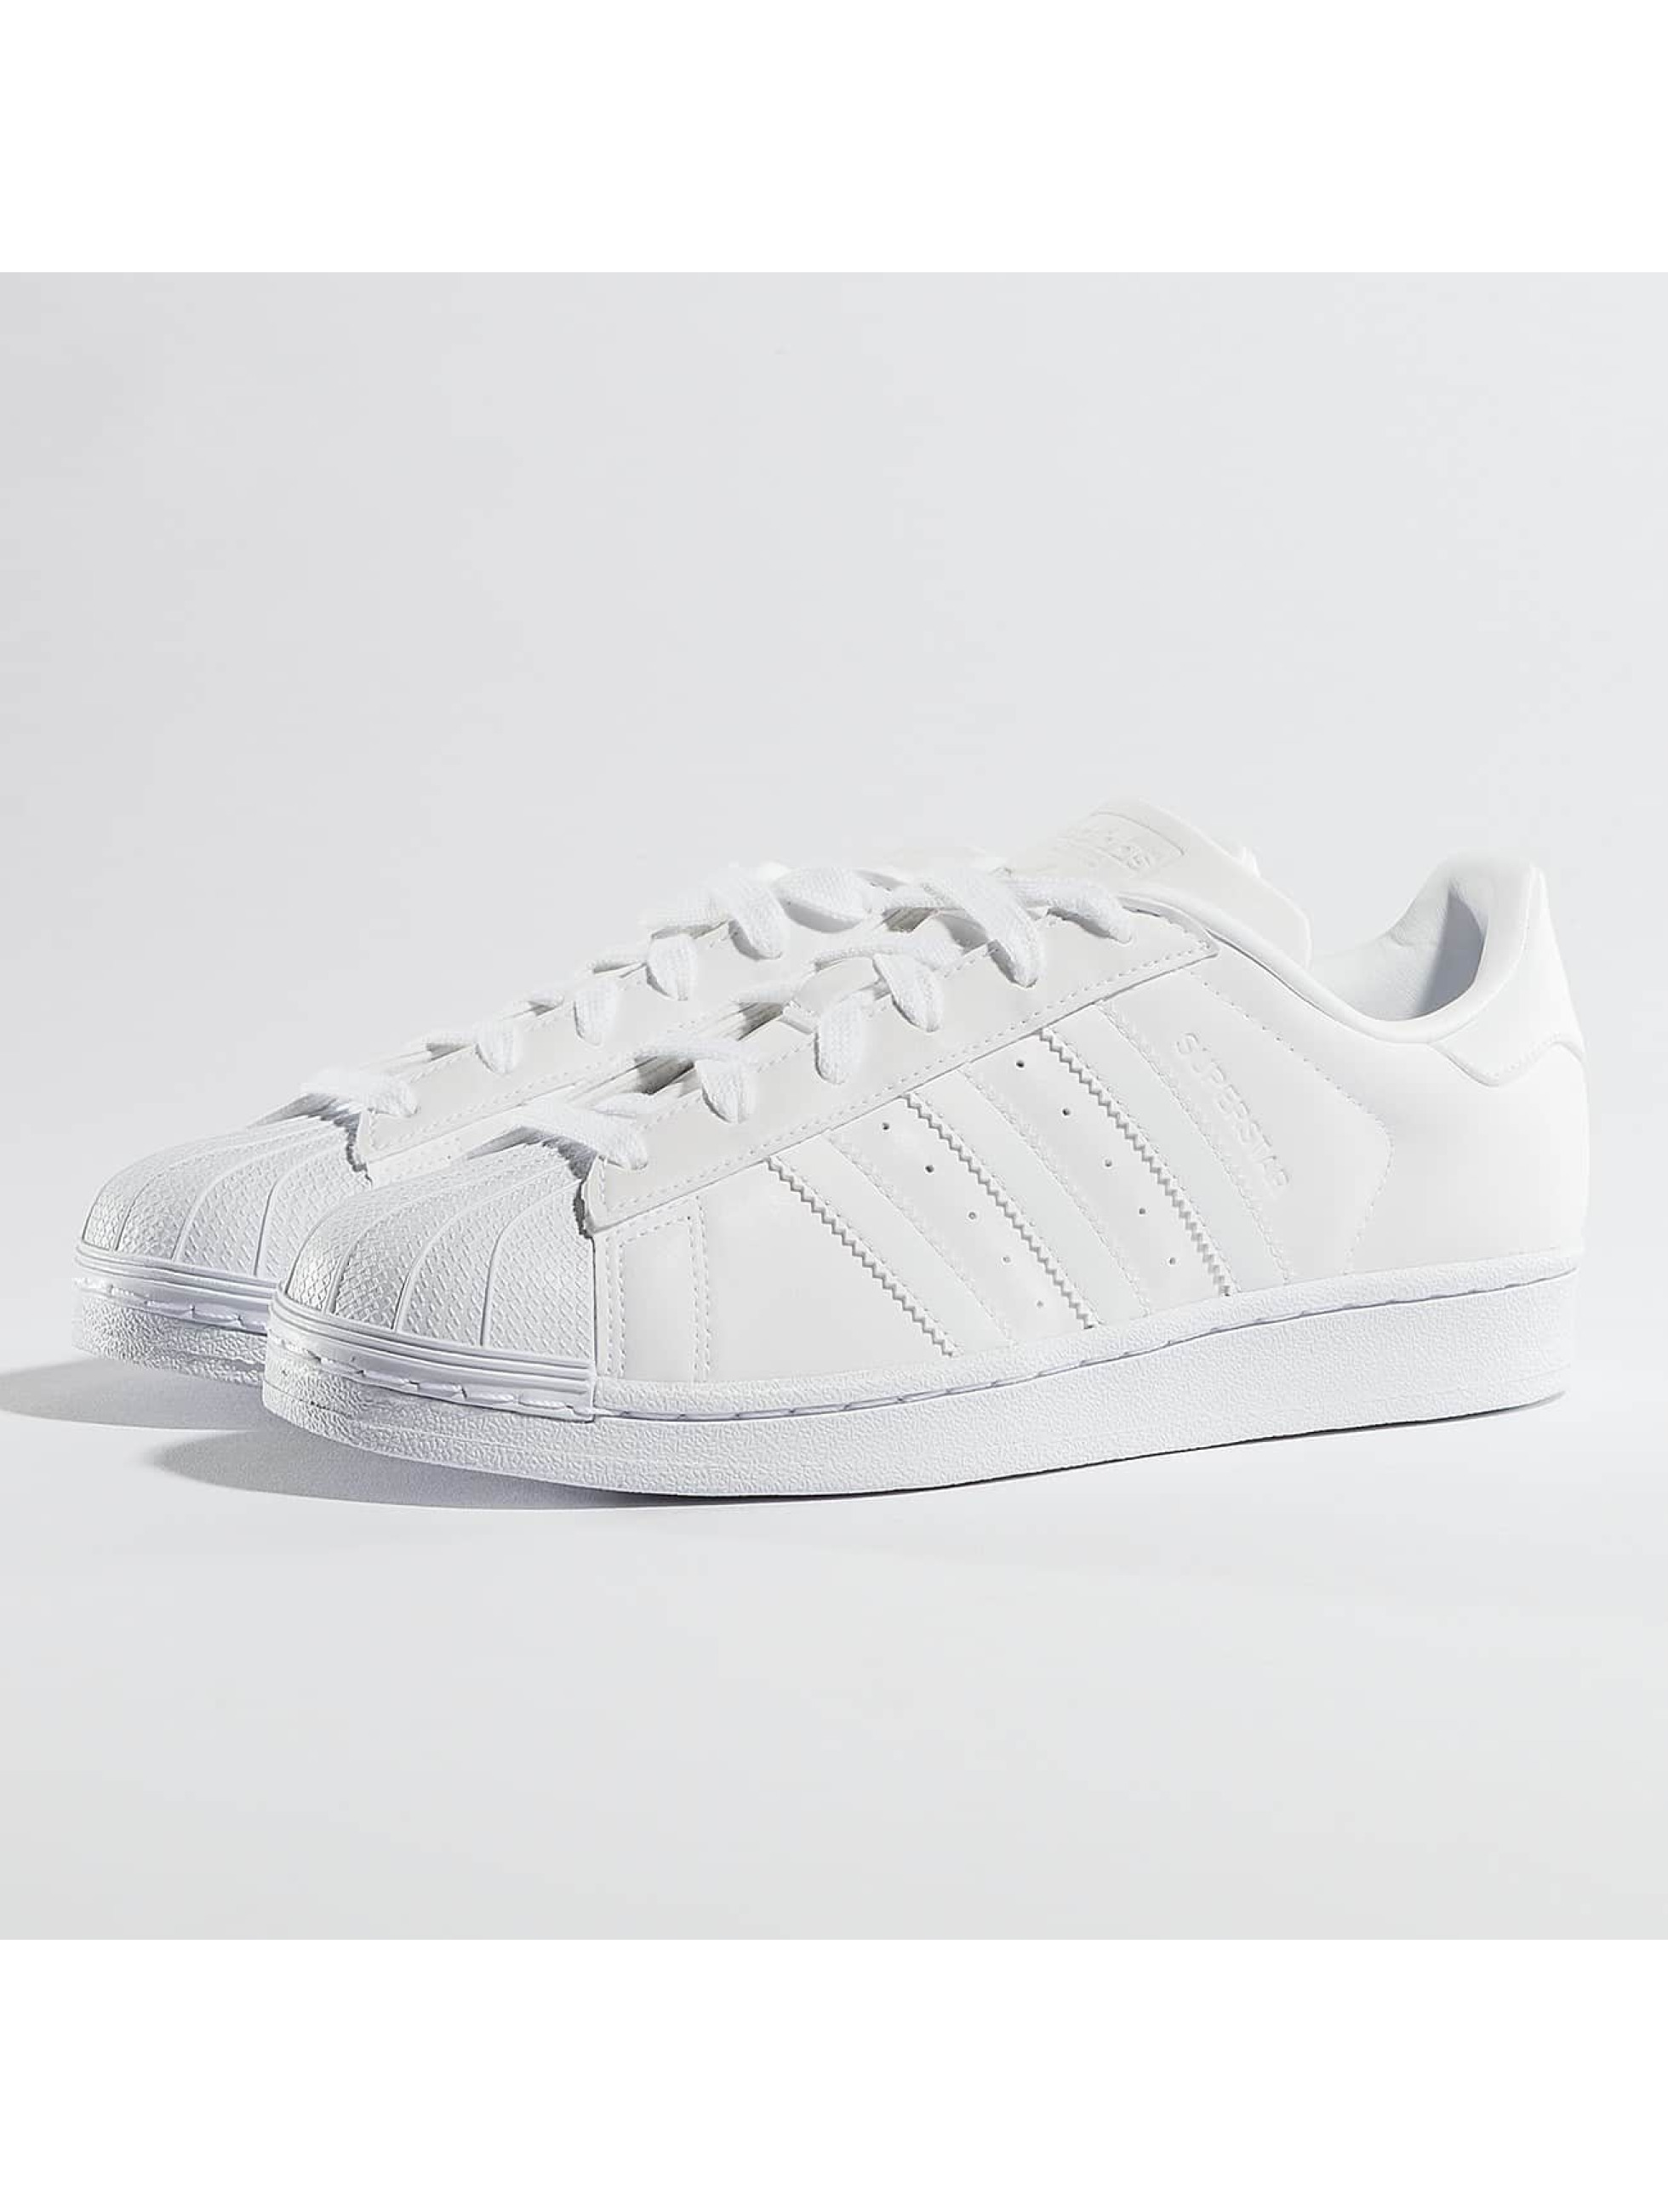 W Sneakers Adidas Ftwr White Superstar ZTOkPXui